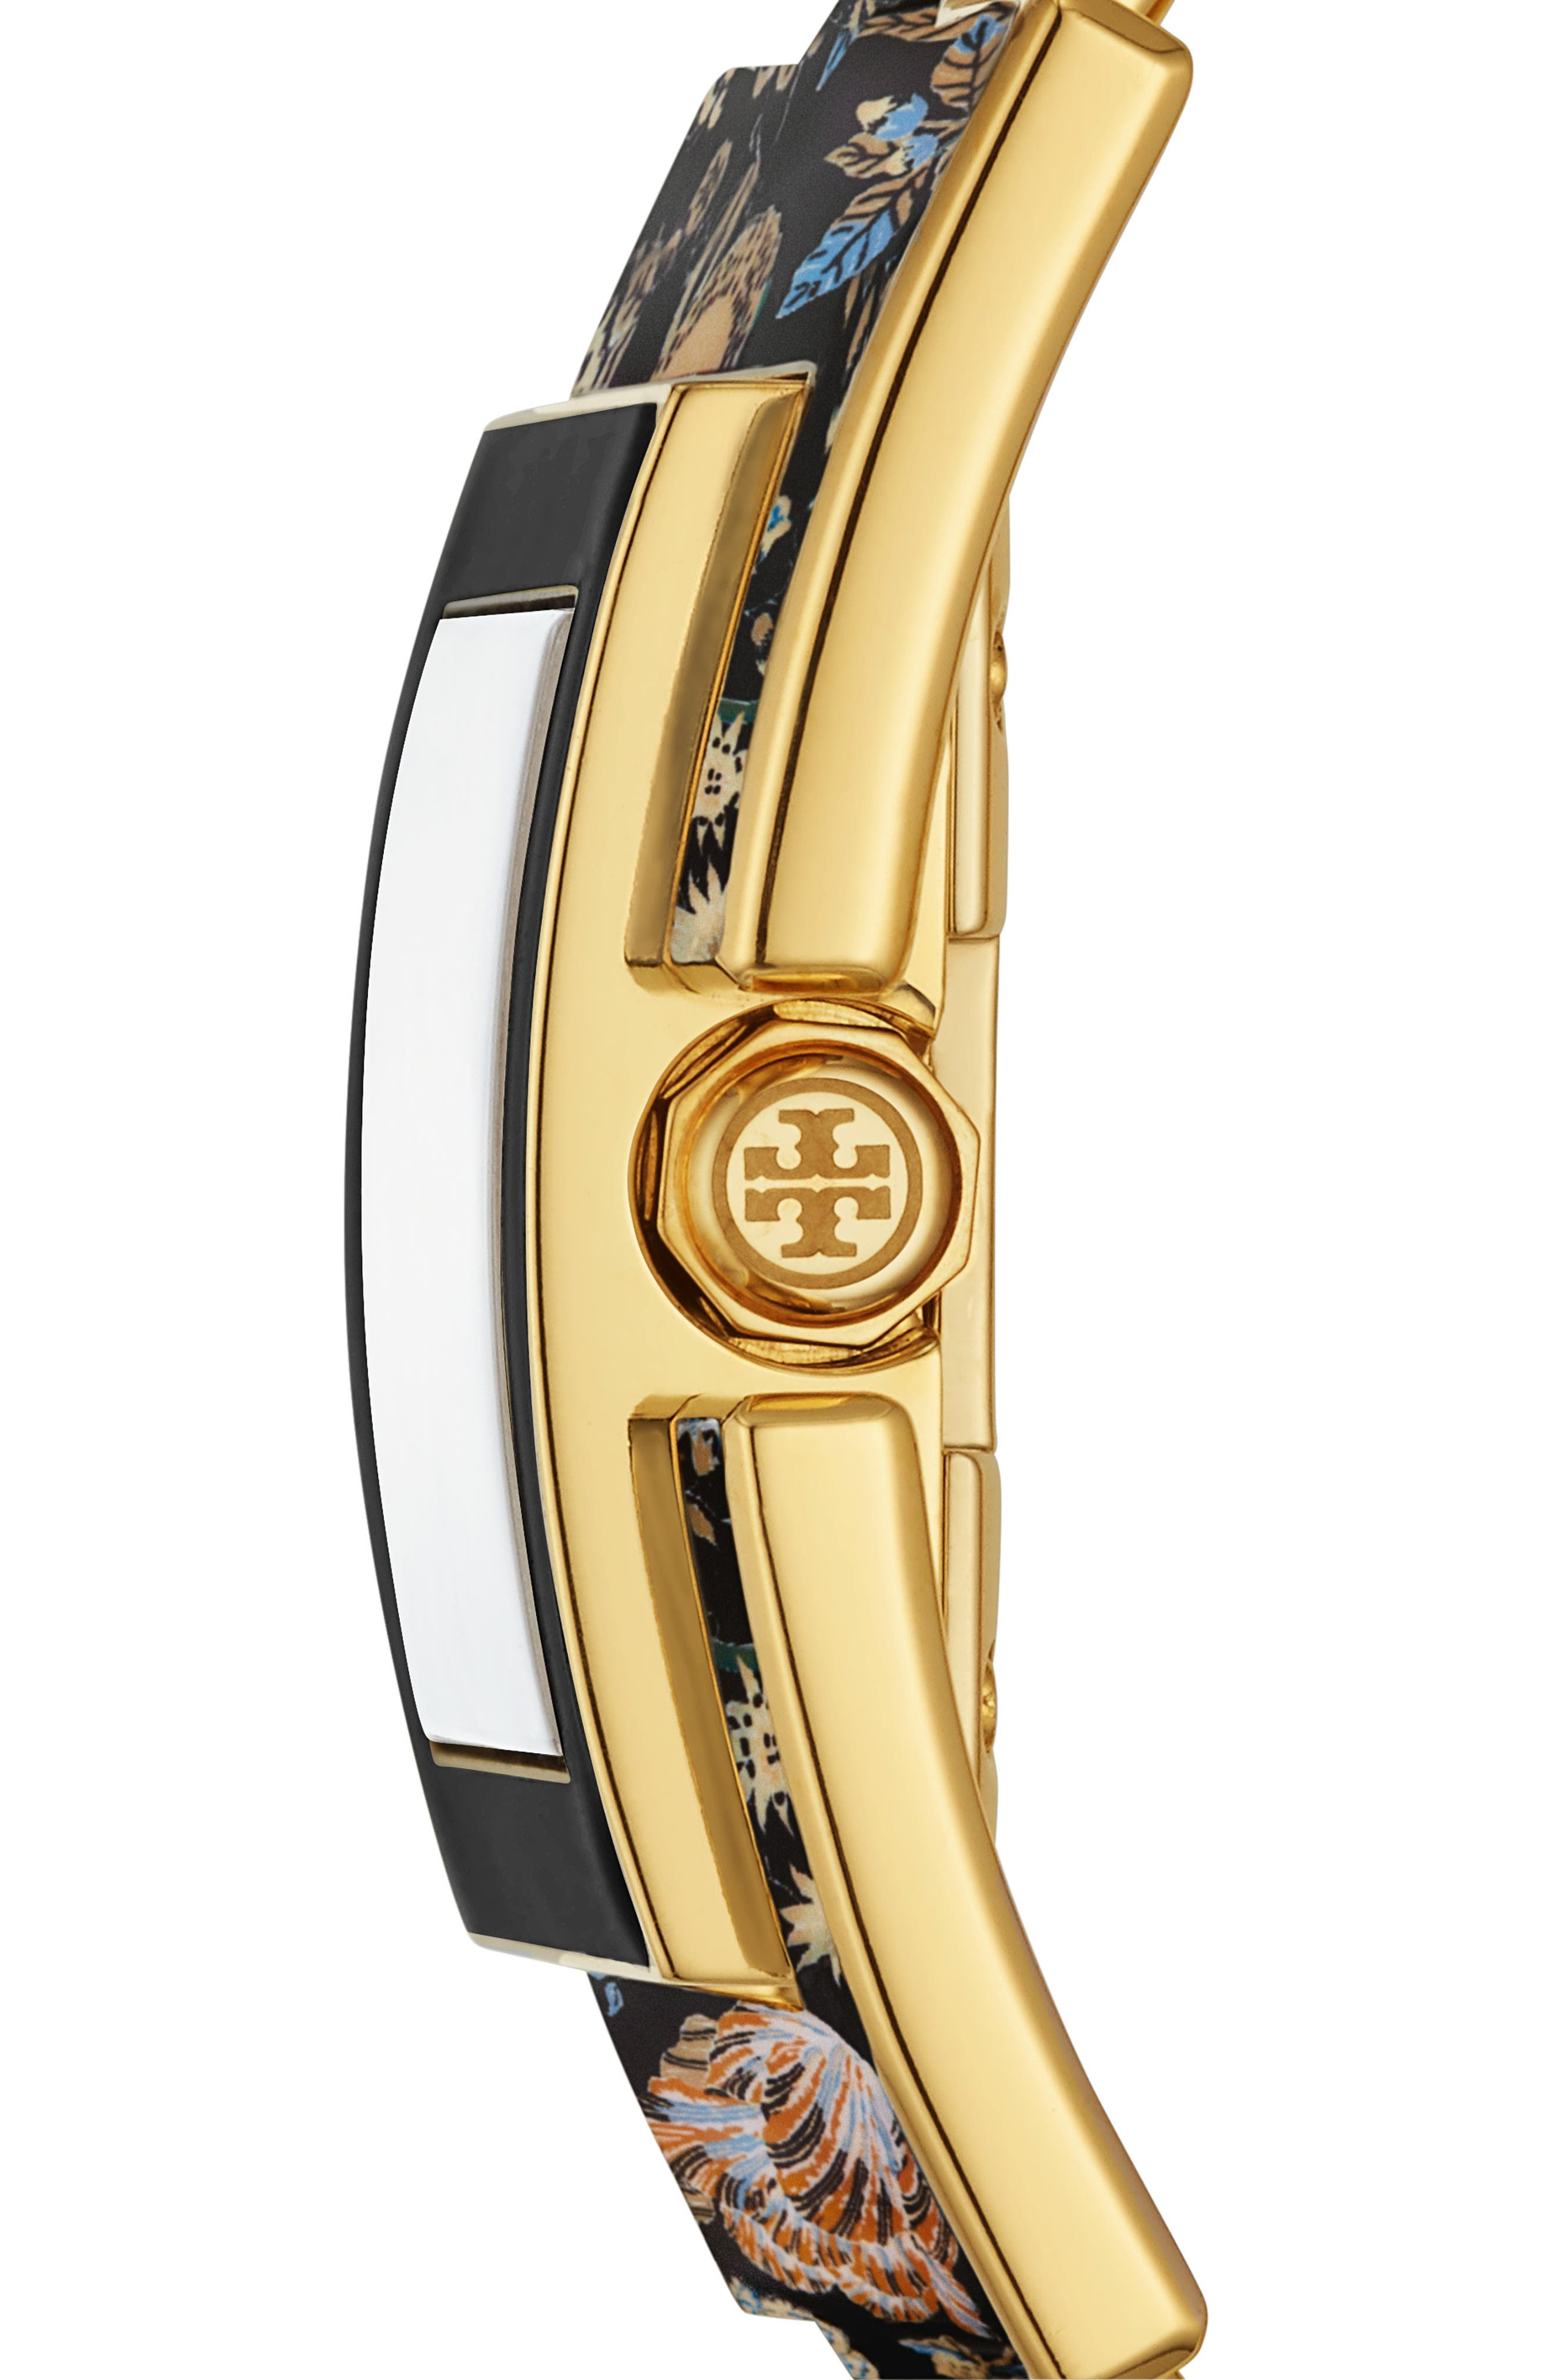 TORY BURCH, T Bangle Bracelet Watch, 25mm x 25mm, Alternate thumbnail 2, color, 001